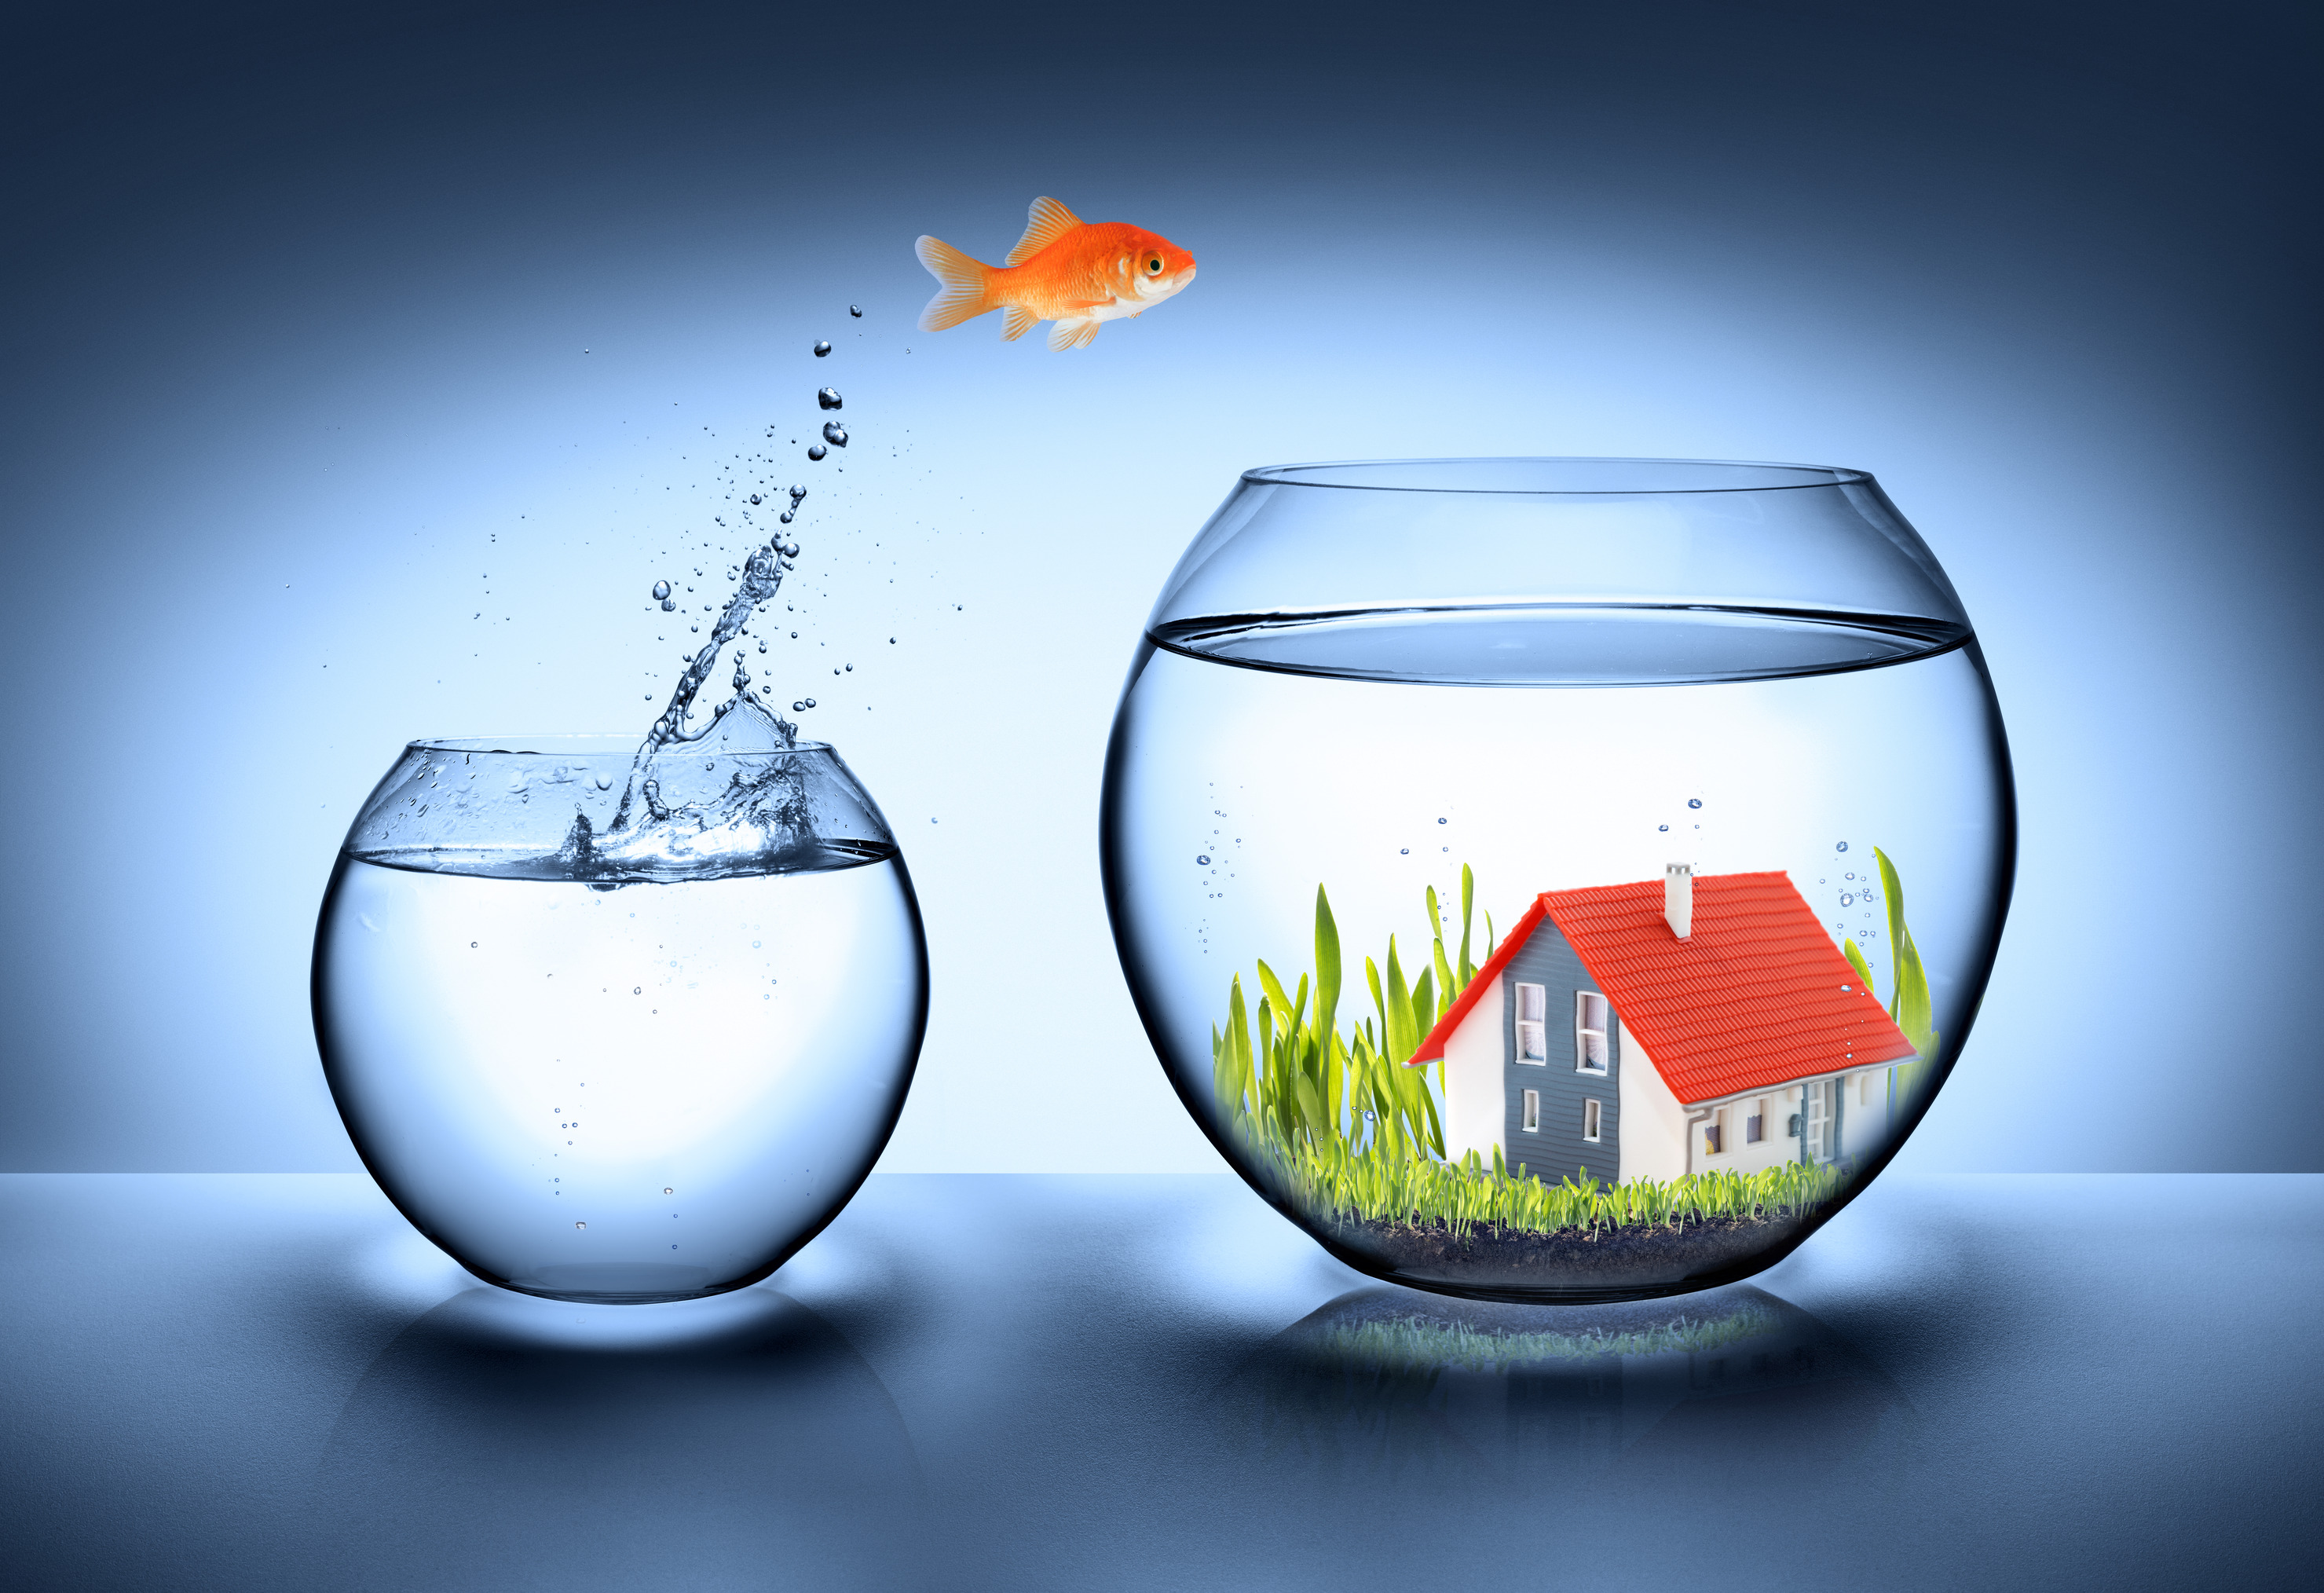 Contact Real Estate Marketing Leads